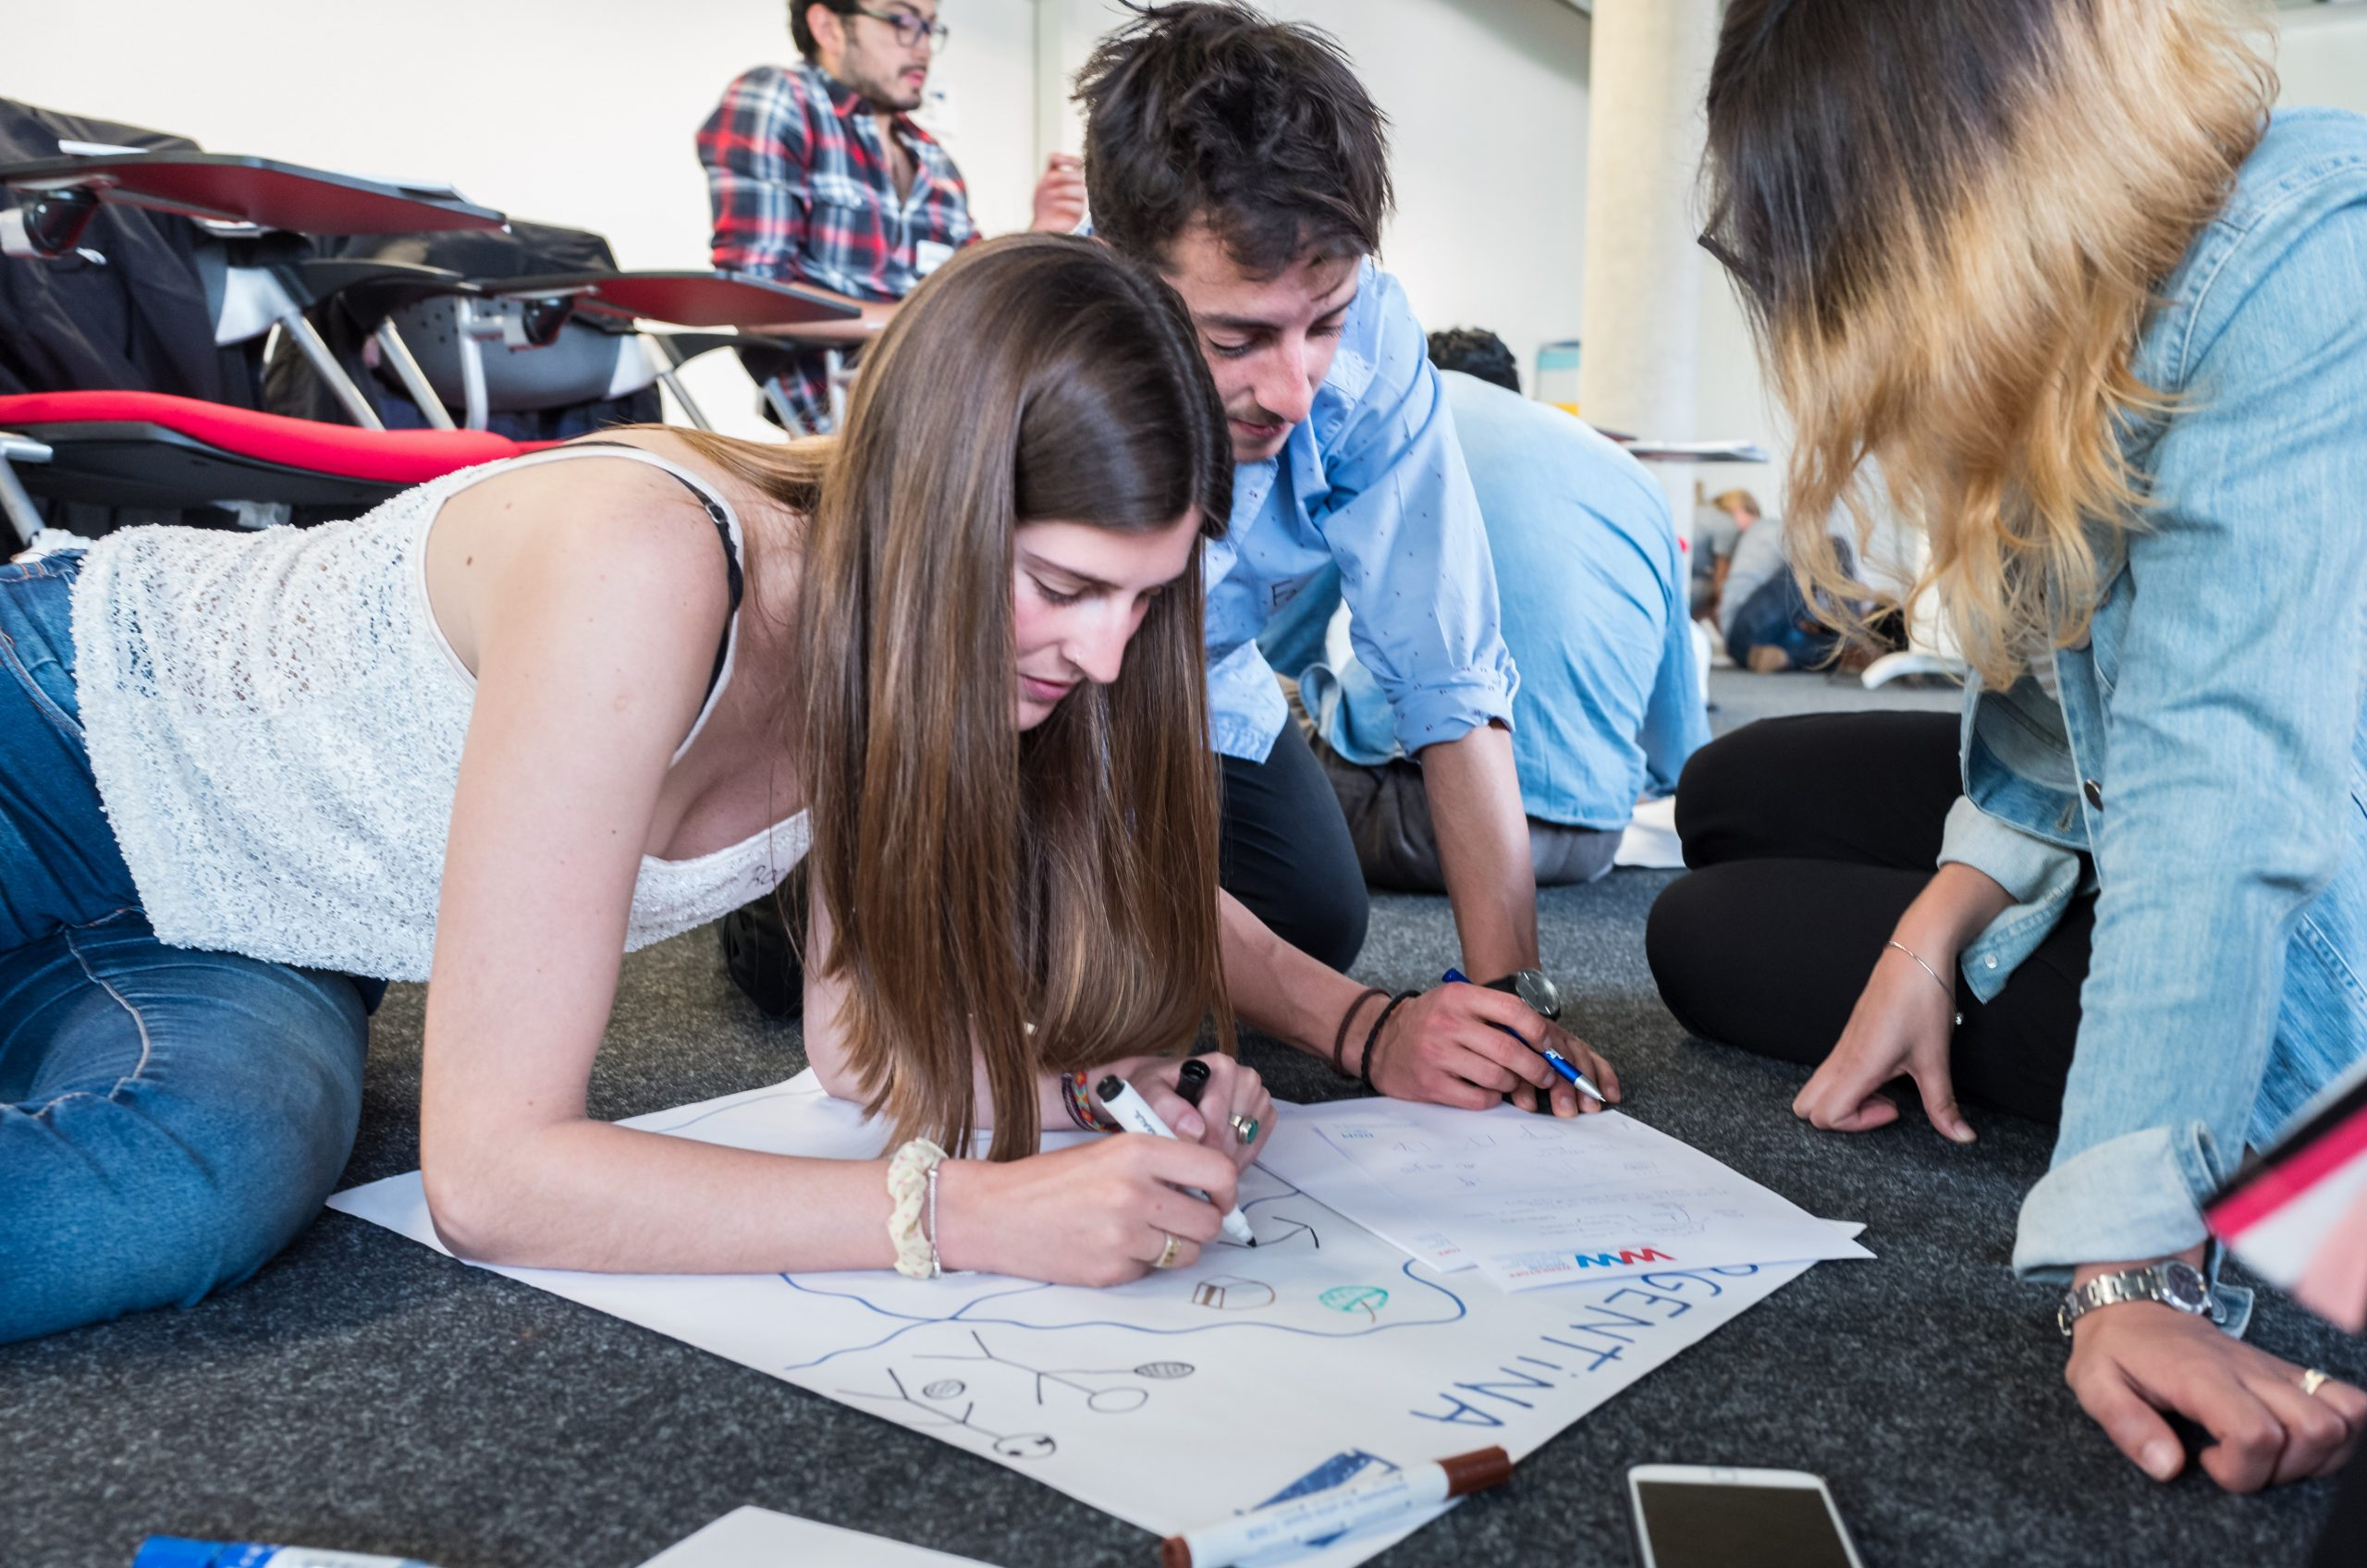 Participants of Integration Week 2018 in AMASE Master Programme working in team during a drawing activity.